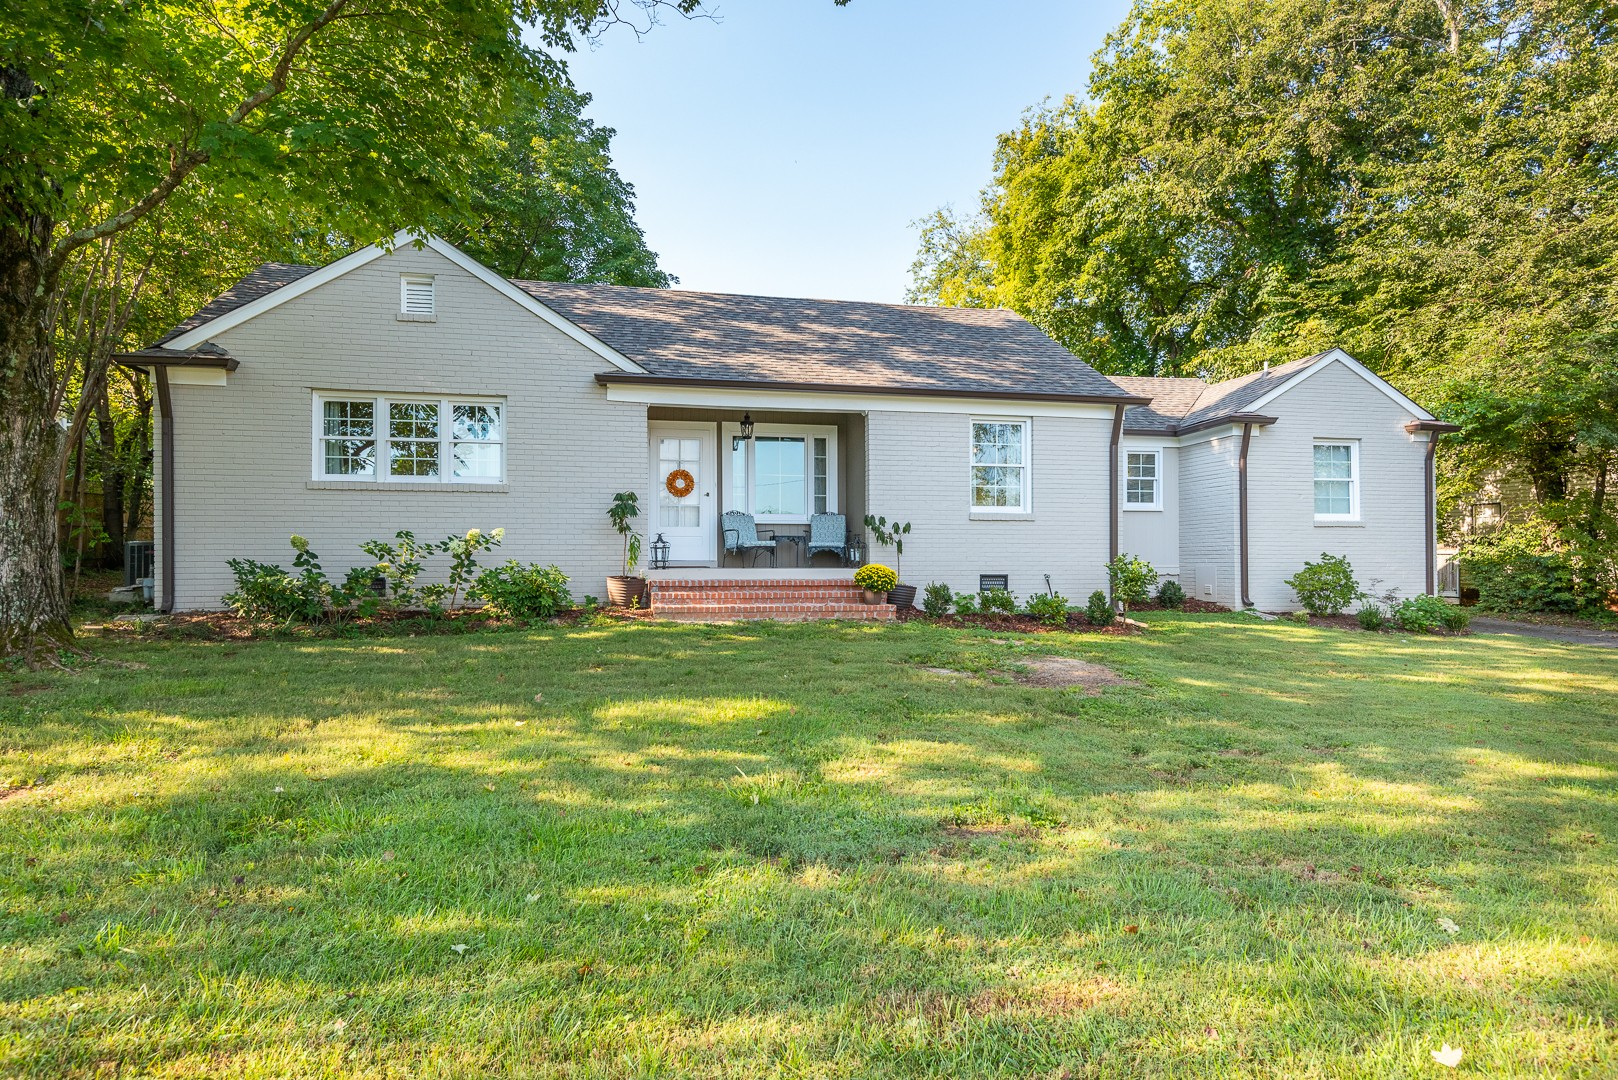 You won't find a better value in Belle Meade Highlands! Fantastic 1 level home in one of Nashville's most desirable areas with so many upgrades - roof, windows, gutters and exterior paint all new in 2020. HVAC and hot water heater new in 2019. Stellar down-to-the-studs primary suite renovation including large bathroom, walk-in closet and vaulted ceilings. Zoned Julia Green and just steps to shopping and restaurants.